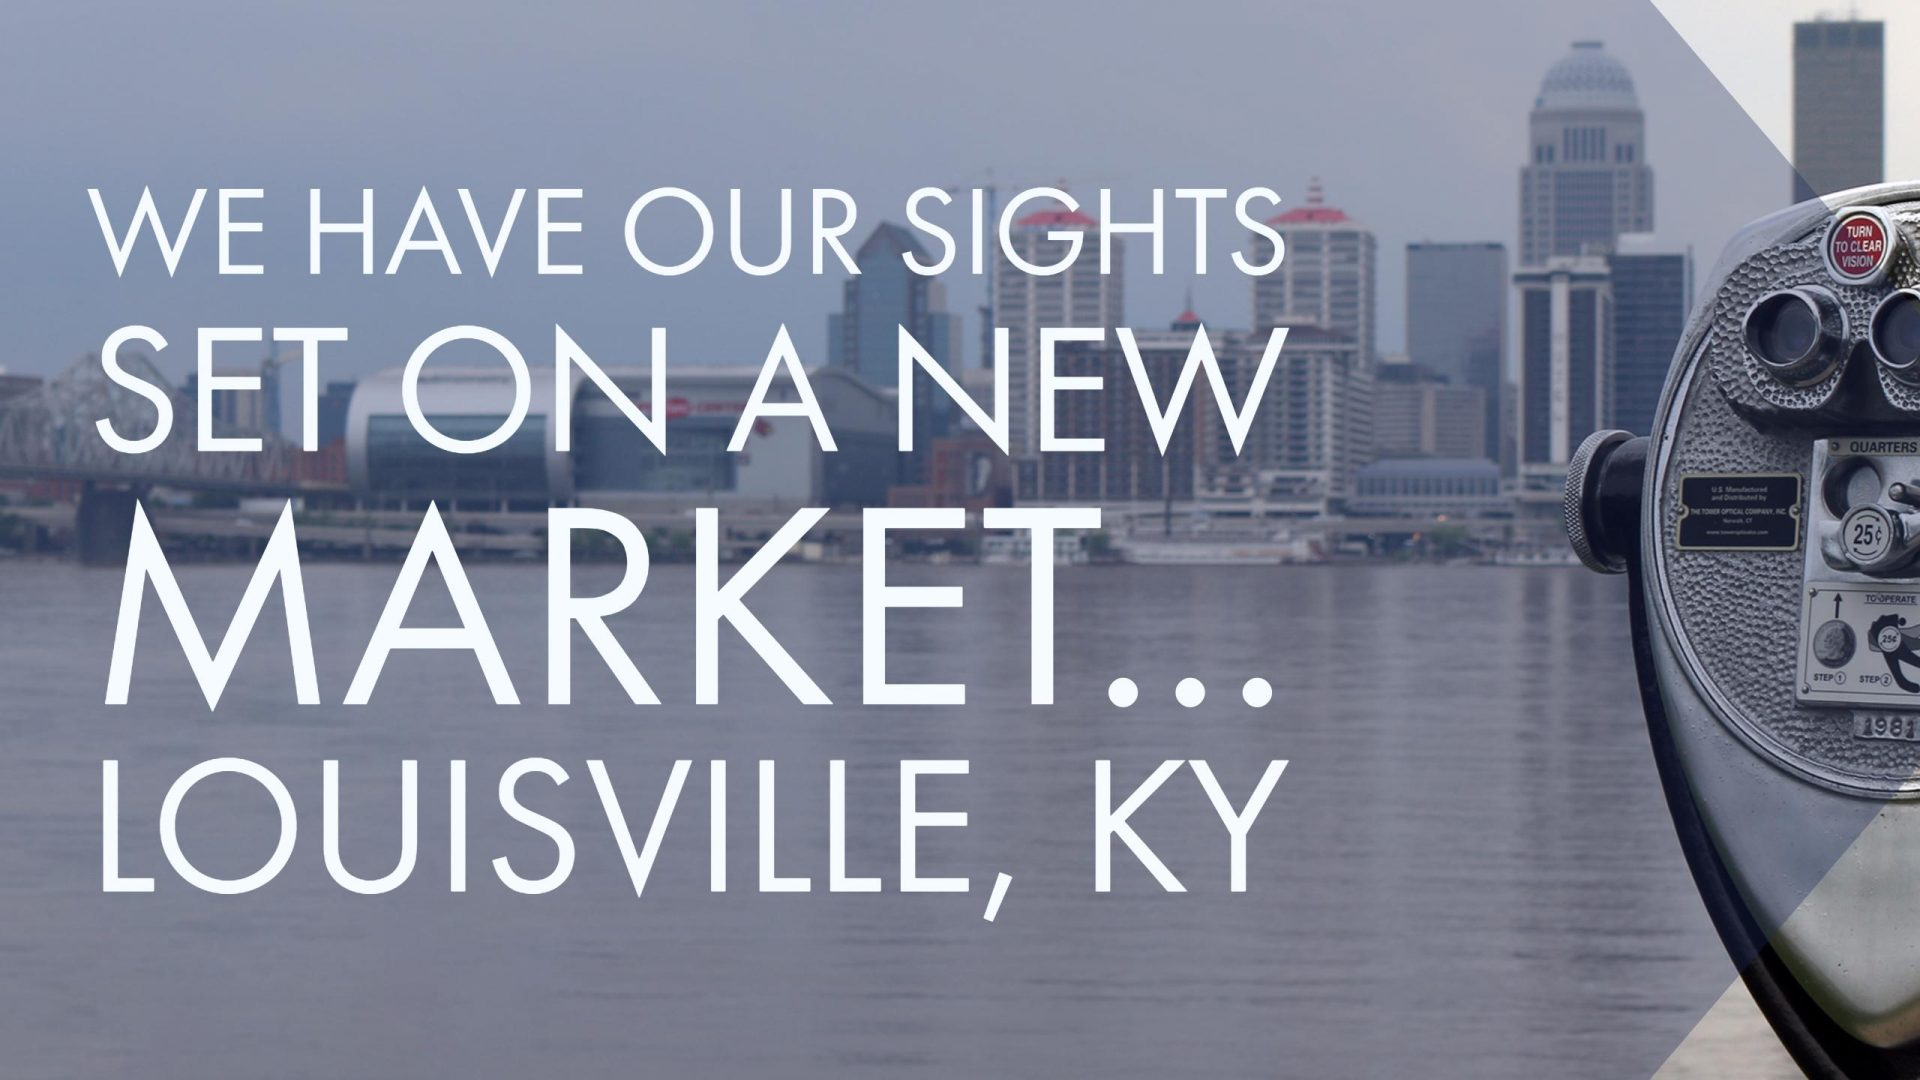 Kleingers expands to Louisville, Kentucky!